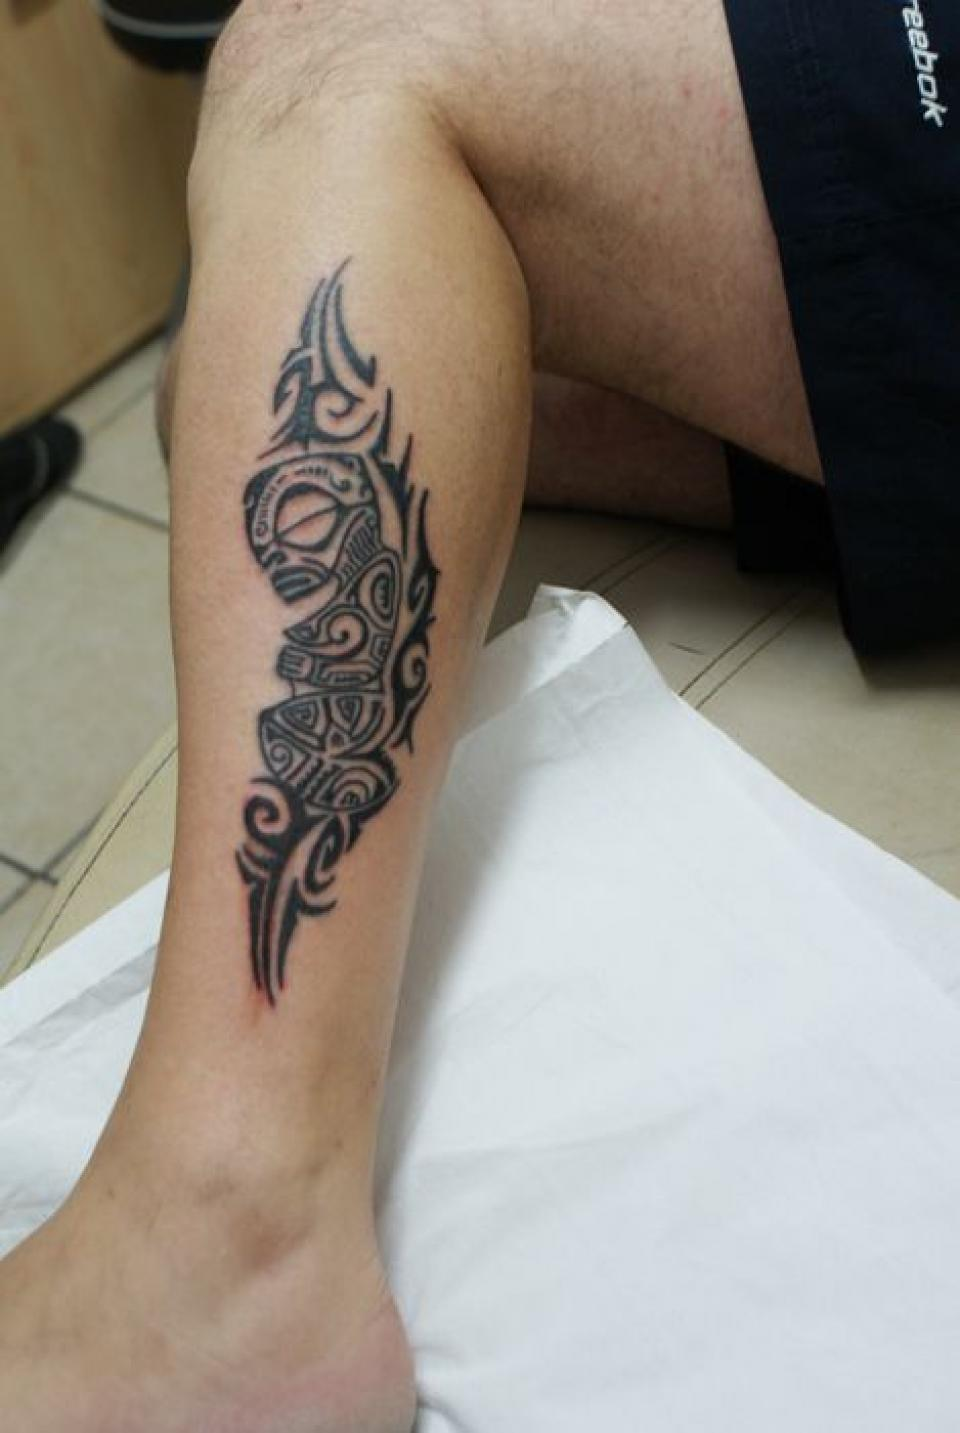 Pin tattoo mollet maori tatouage le page 20 pelautscom on pinterest - Tattoo mollet homme ...